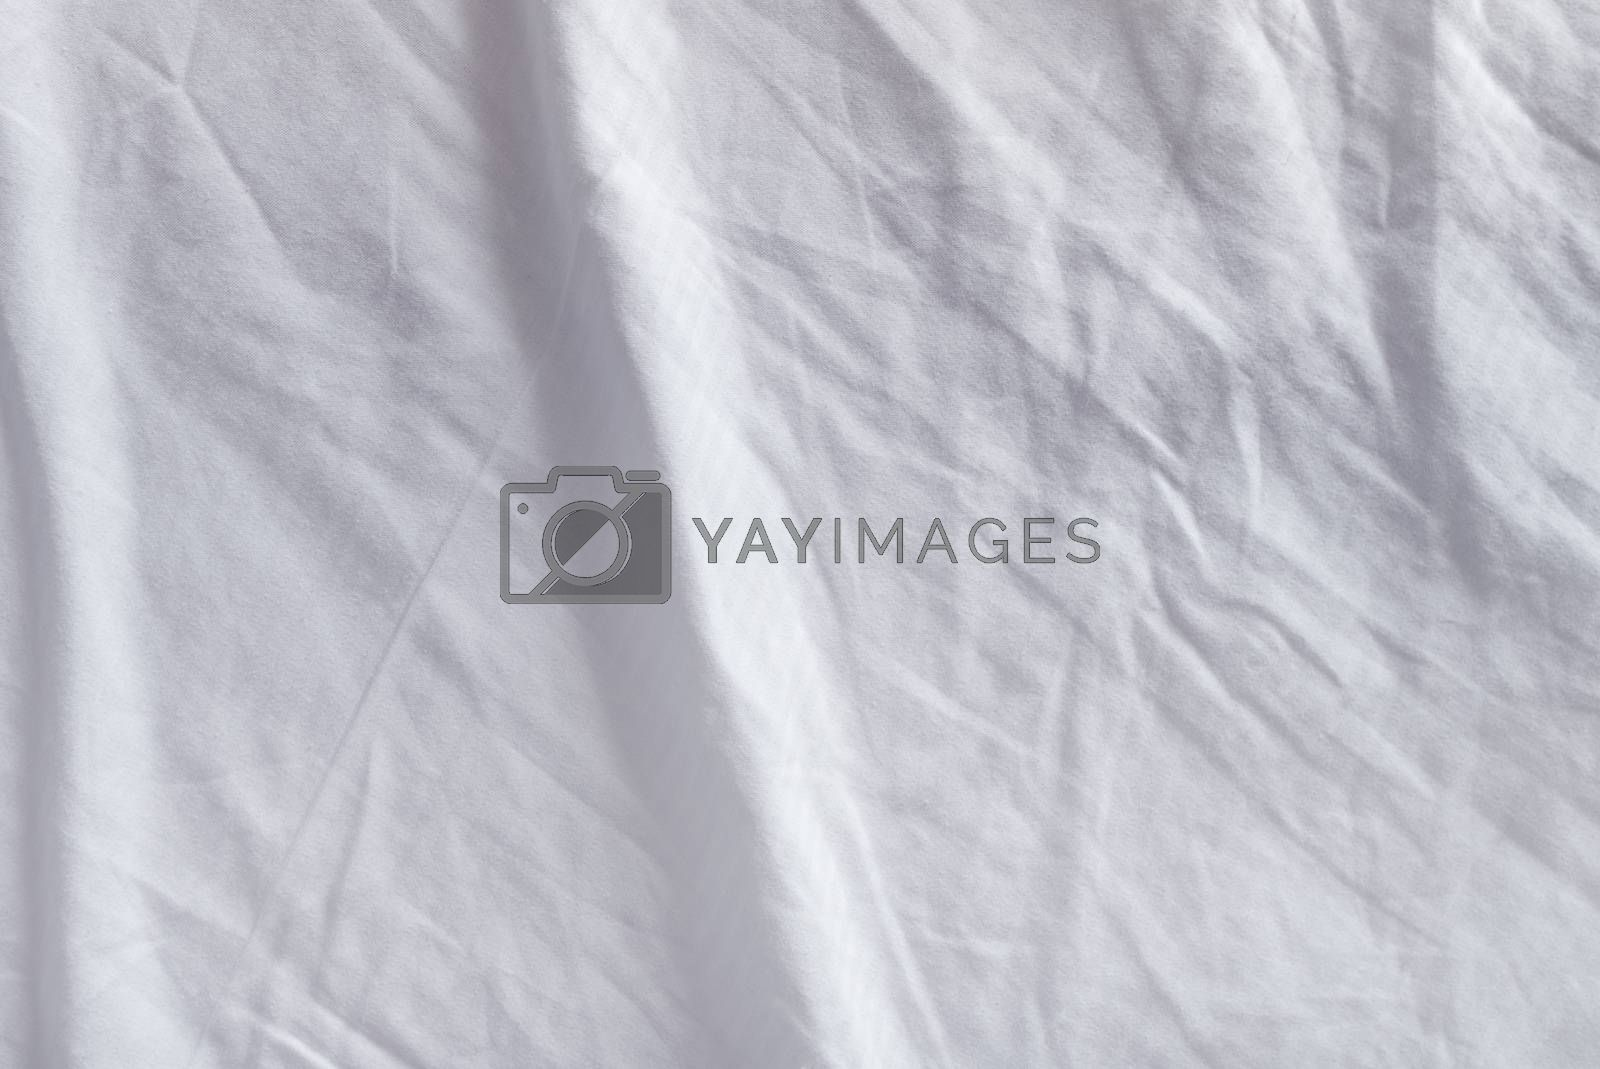 Crumpled bedding texture, top view of used bed sheets